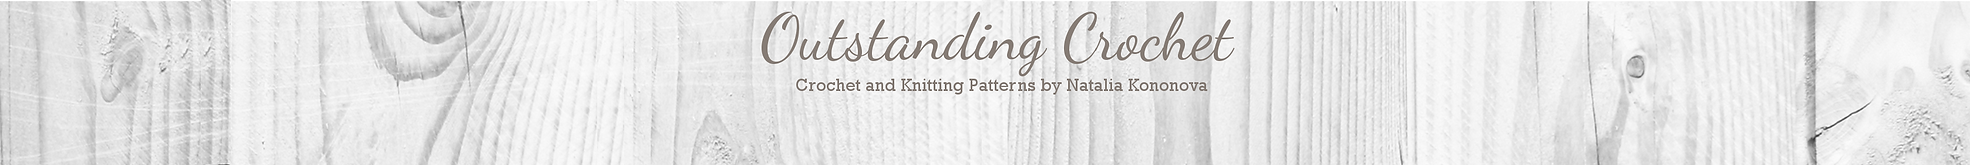 OutstandingCrochet HeaderNew4.png